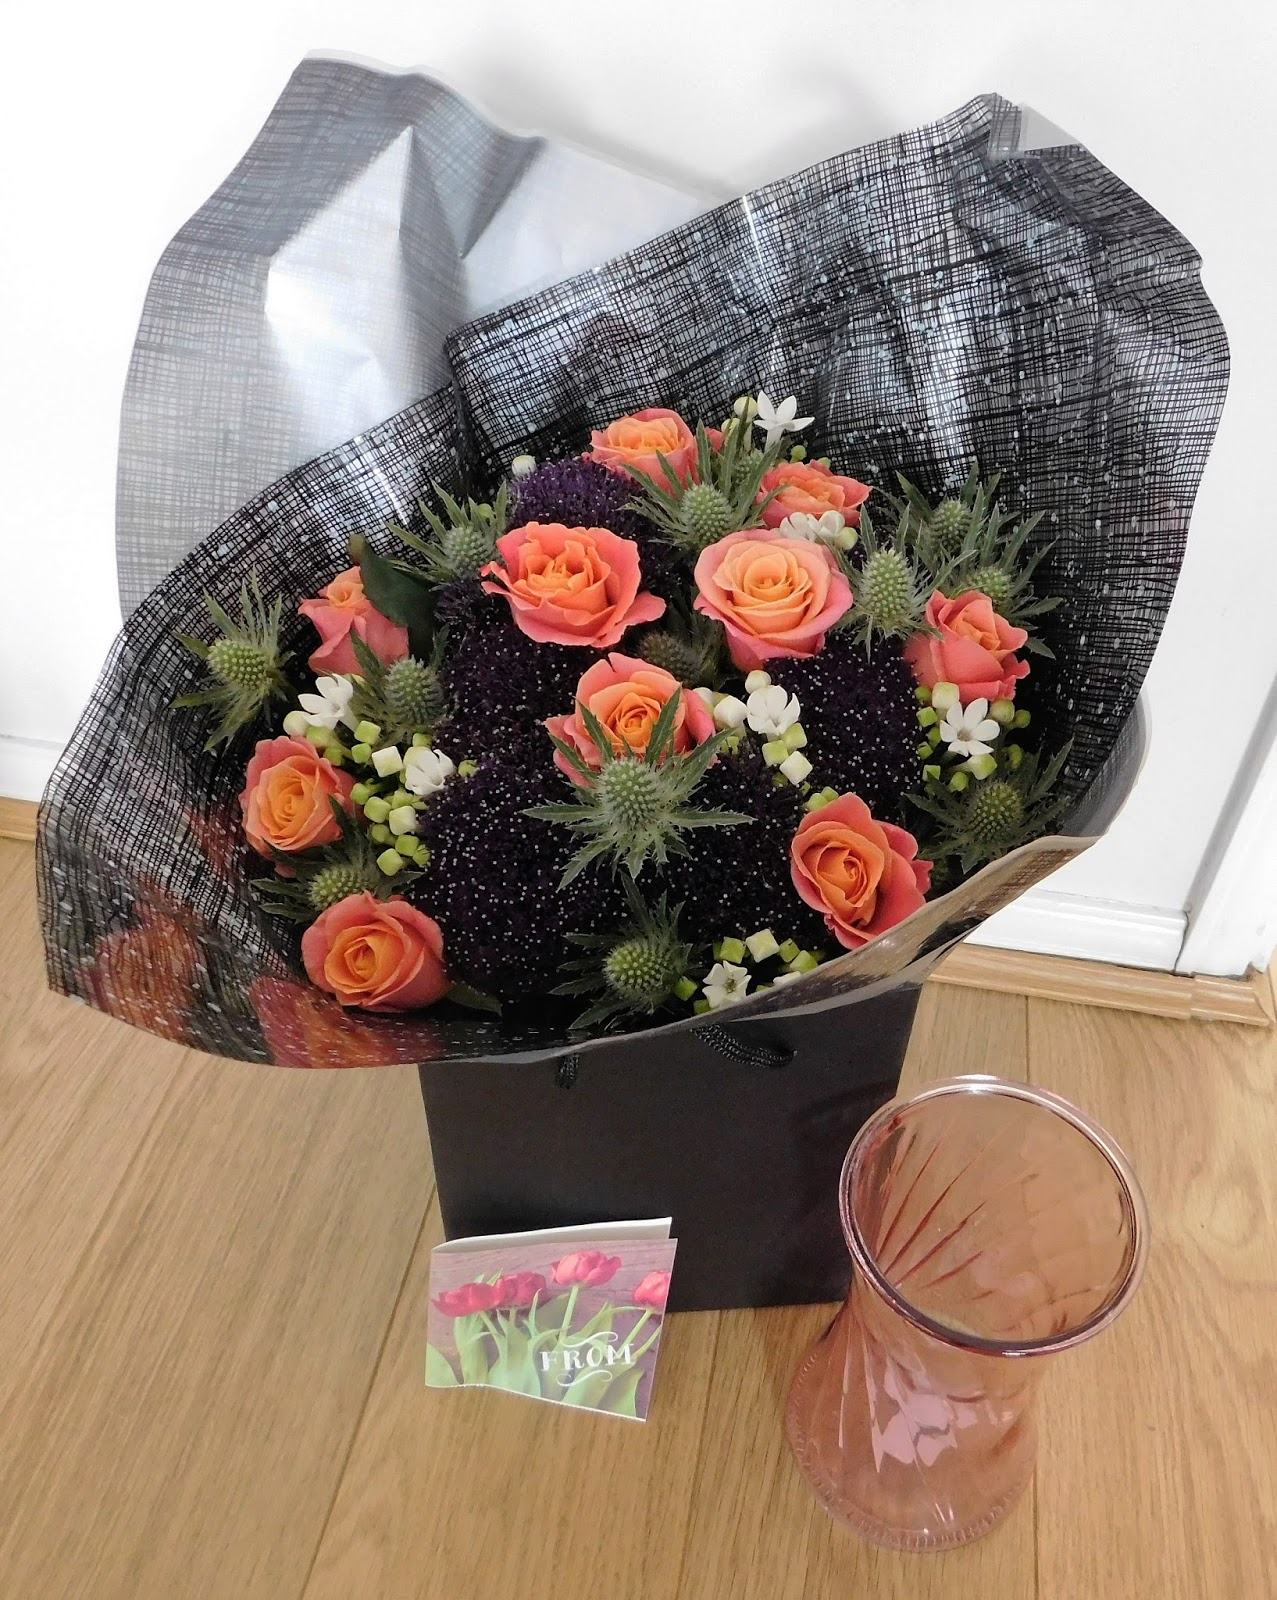 Flower power with prestige flowers aimee raindrop writes prestige flowers are a flower delivery service based in the uk all their bouquets are arranged by highly skilled british florists and backed by a 100 izmirmasajfo